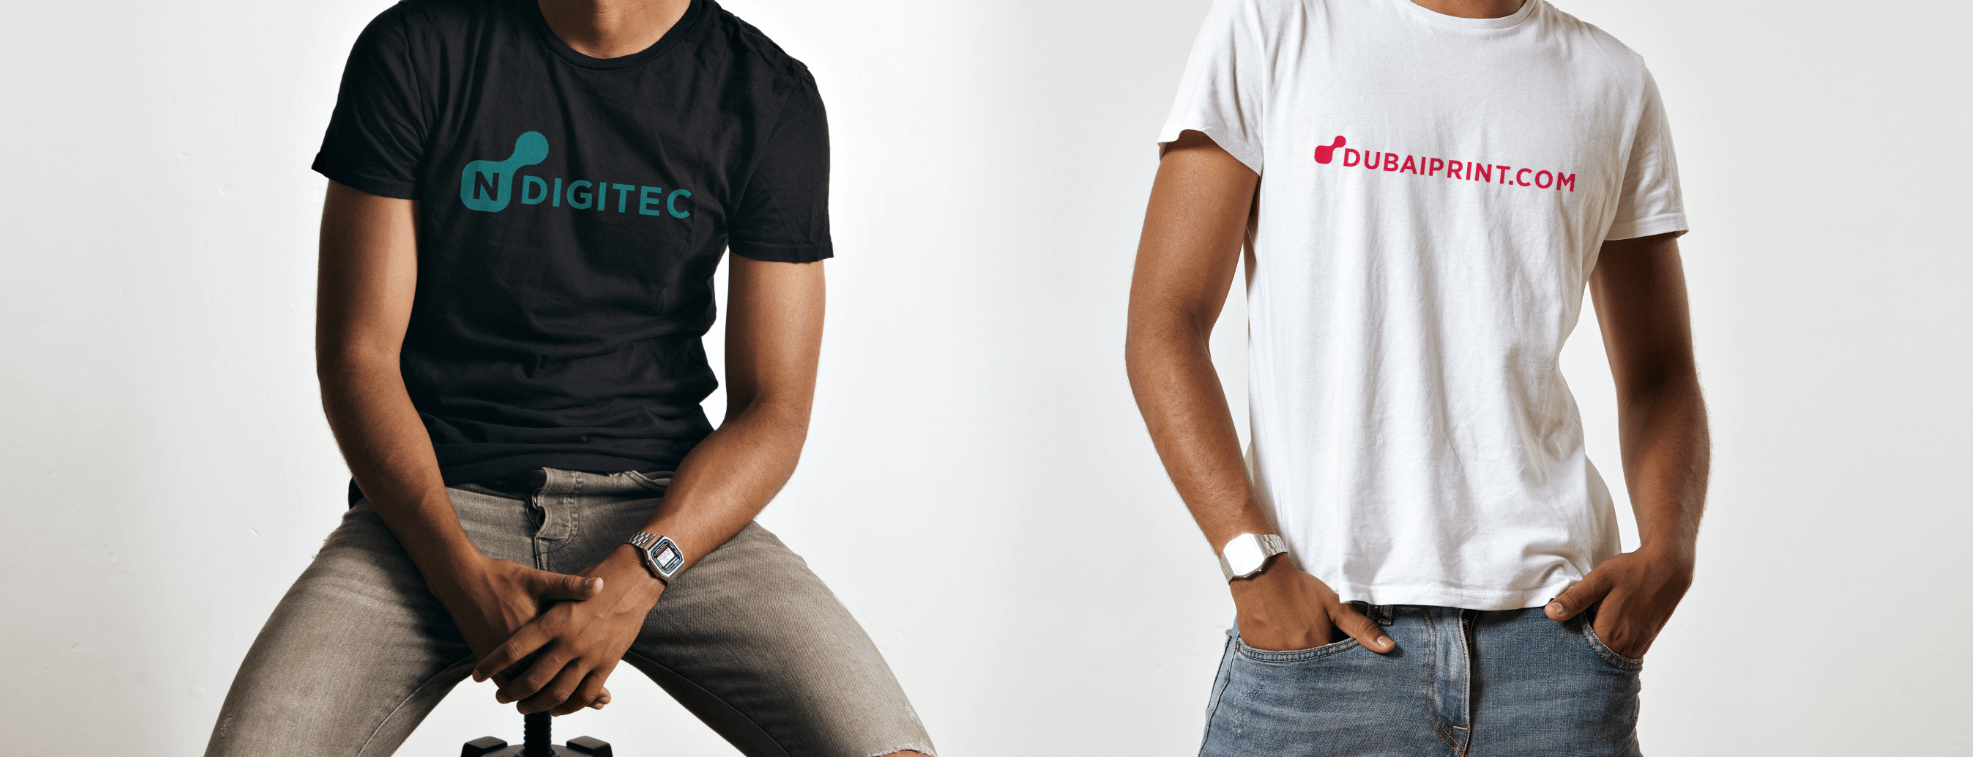 Custom-made made promotional t-shirts for Dubaiprint and NDigitec